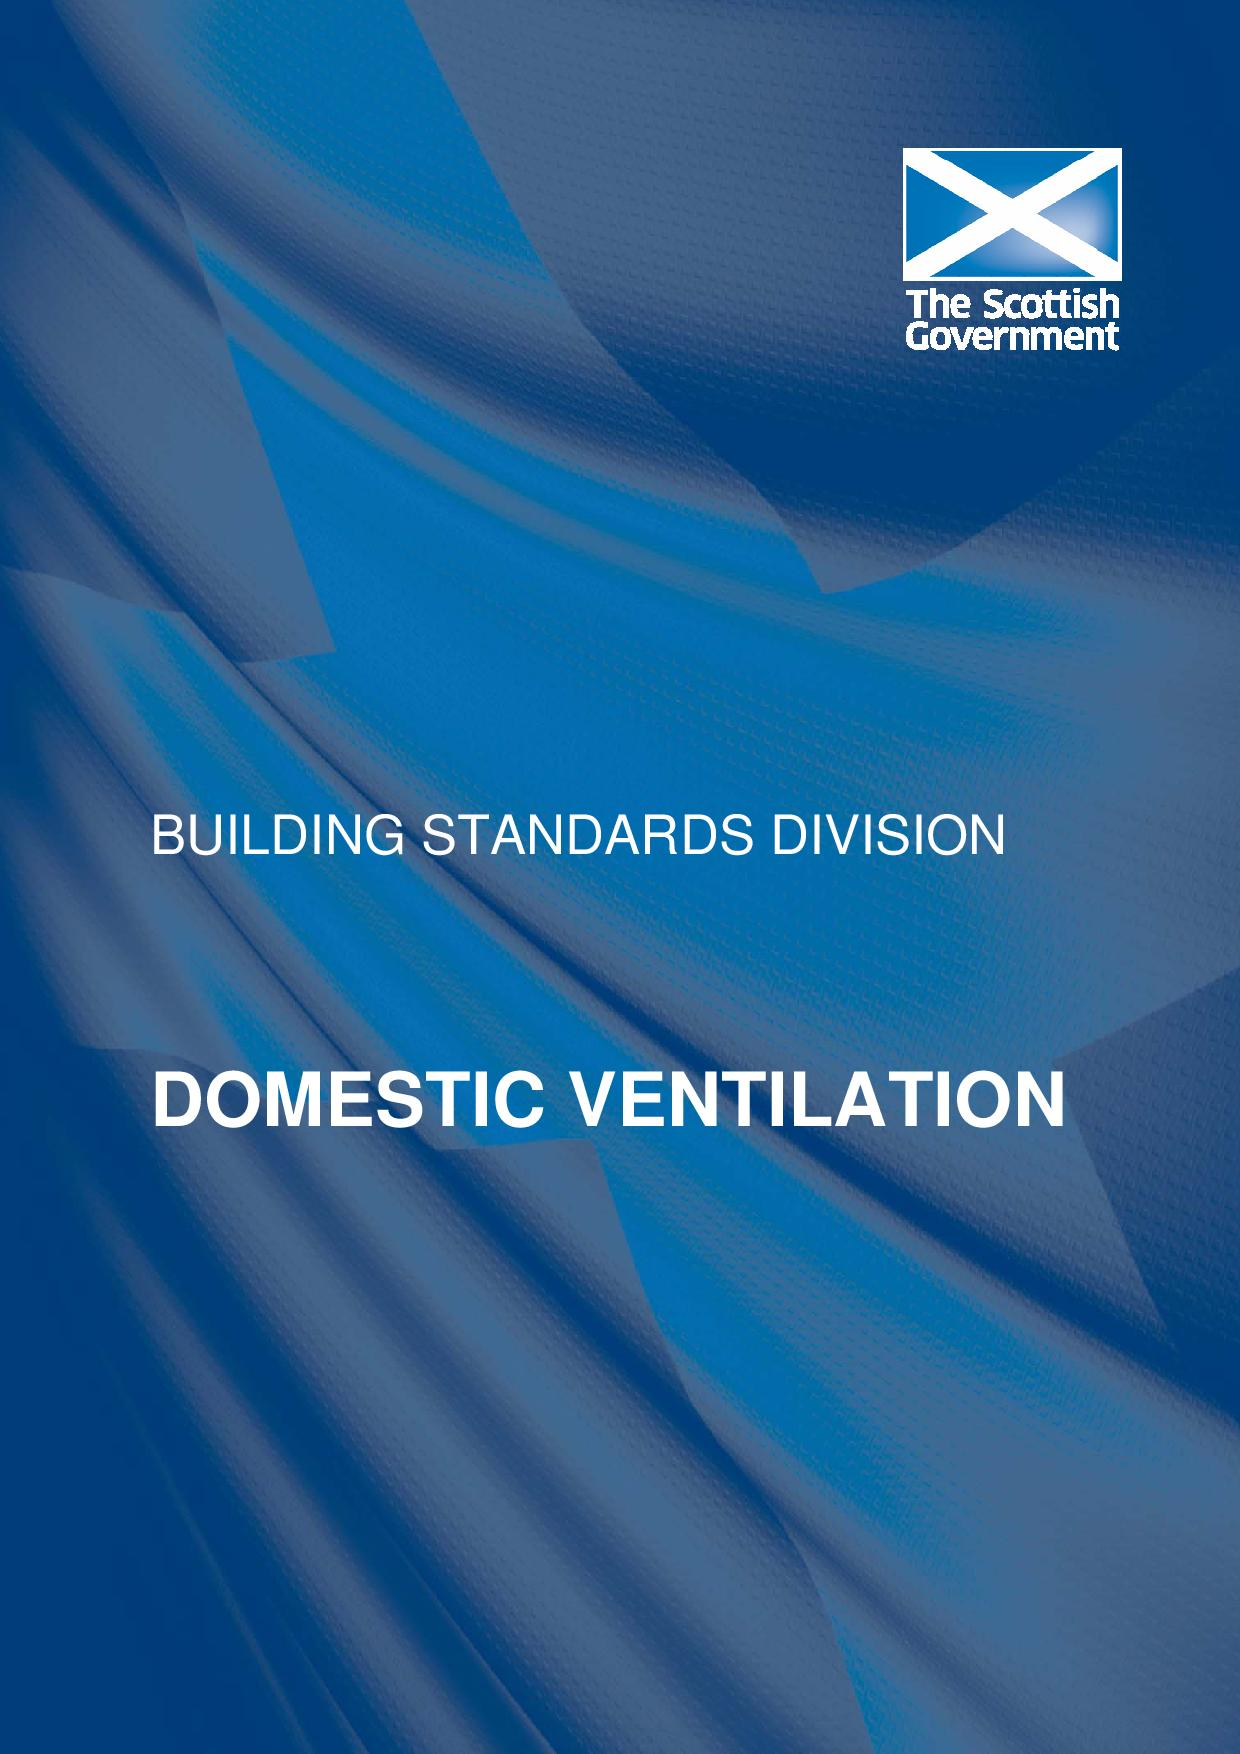 Scottish Building Standards Domestic Ventilation-page-001